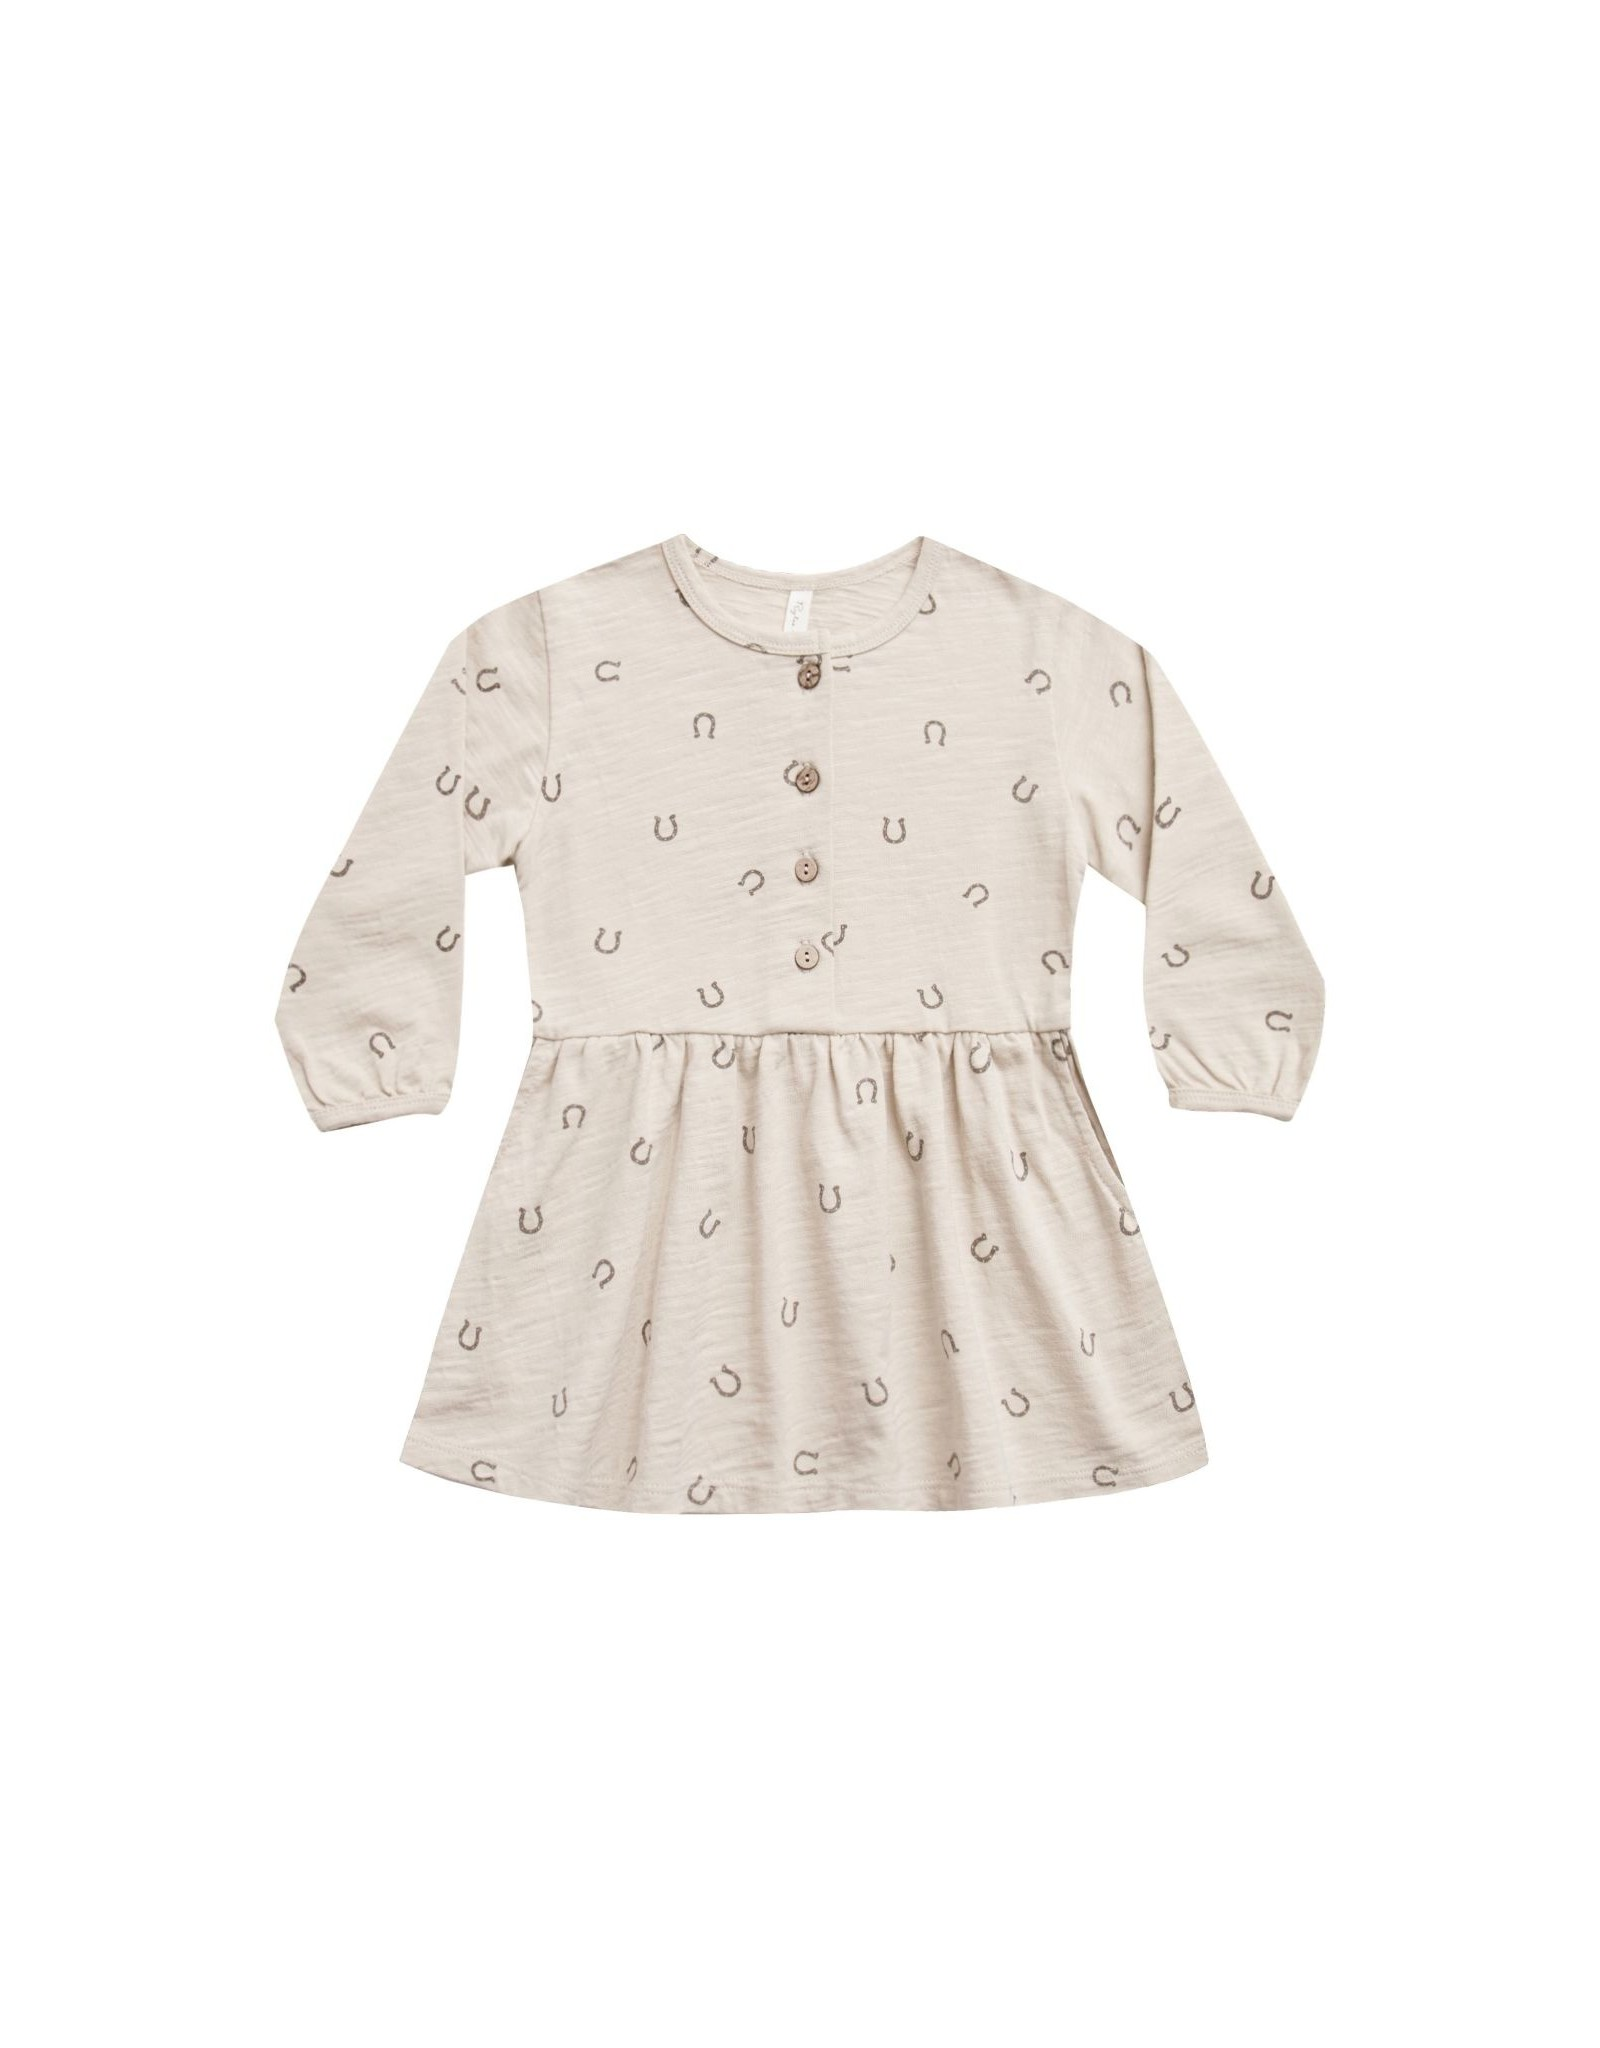 Rylee and Cru button up dress- horseshoes